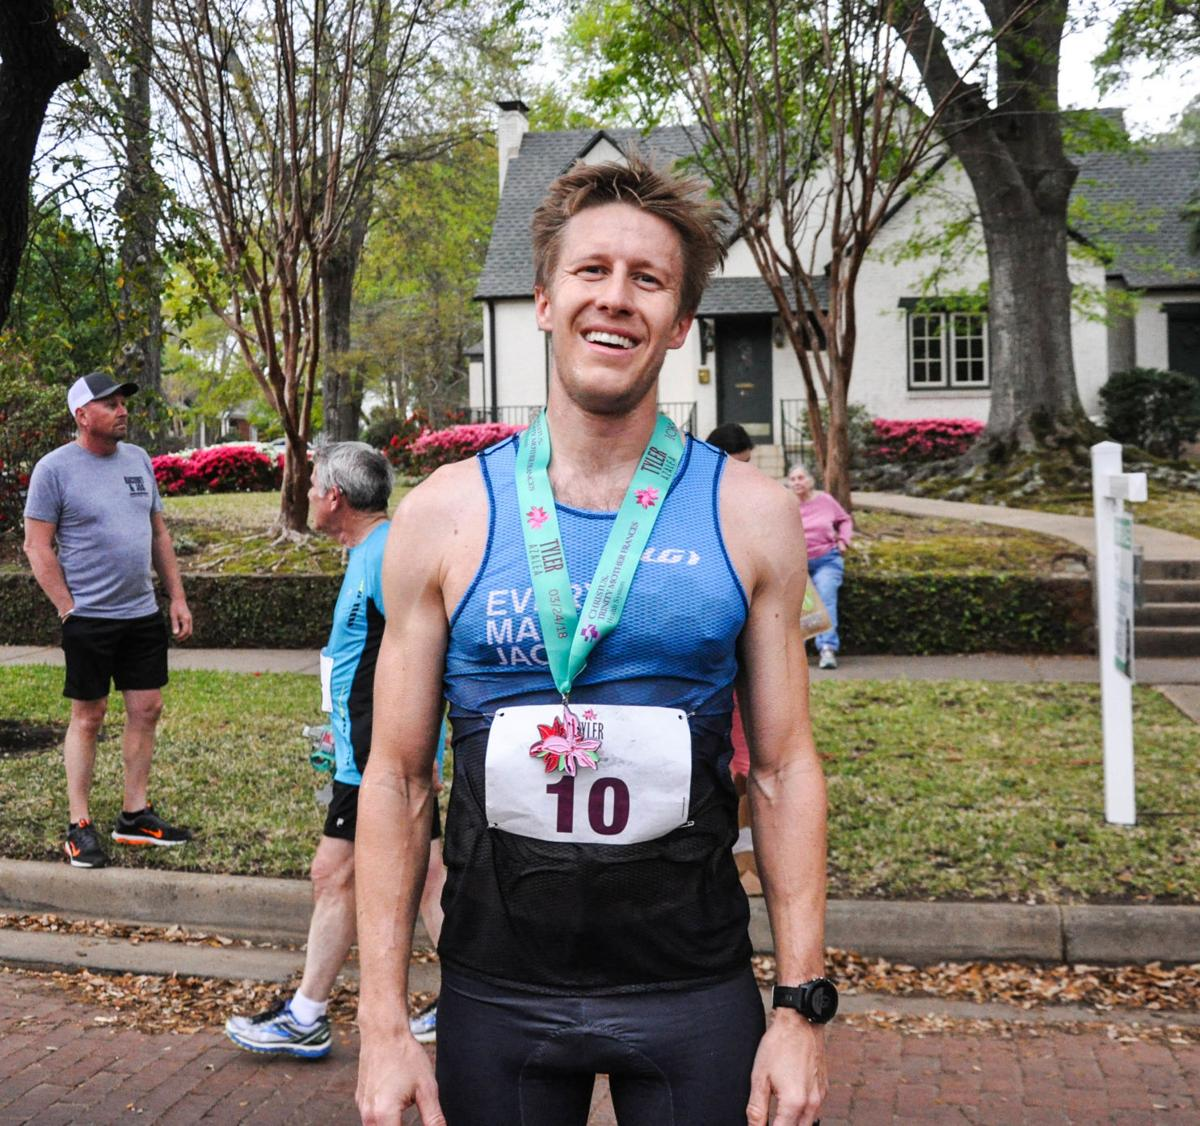 20180325_local_azalea_run_11.jpg